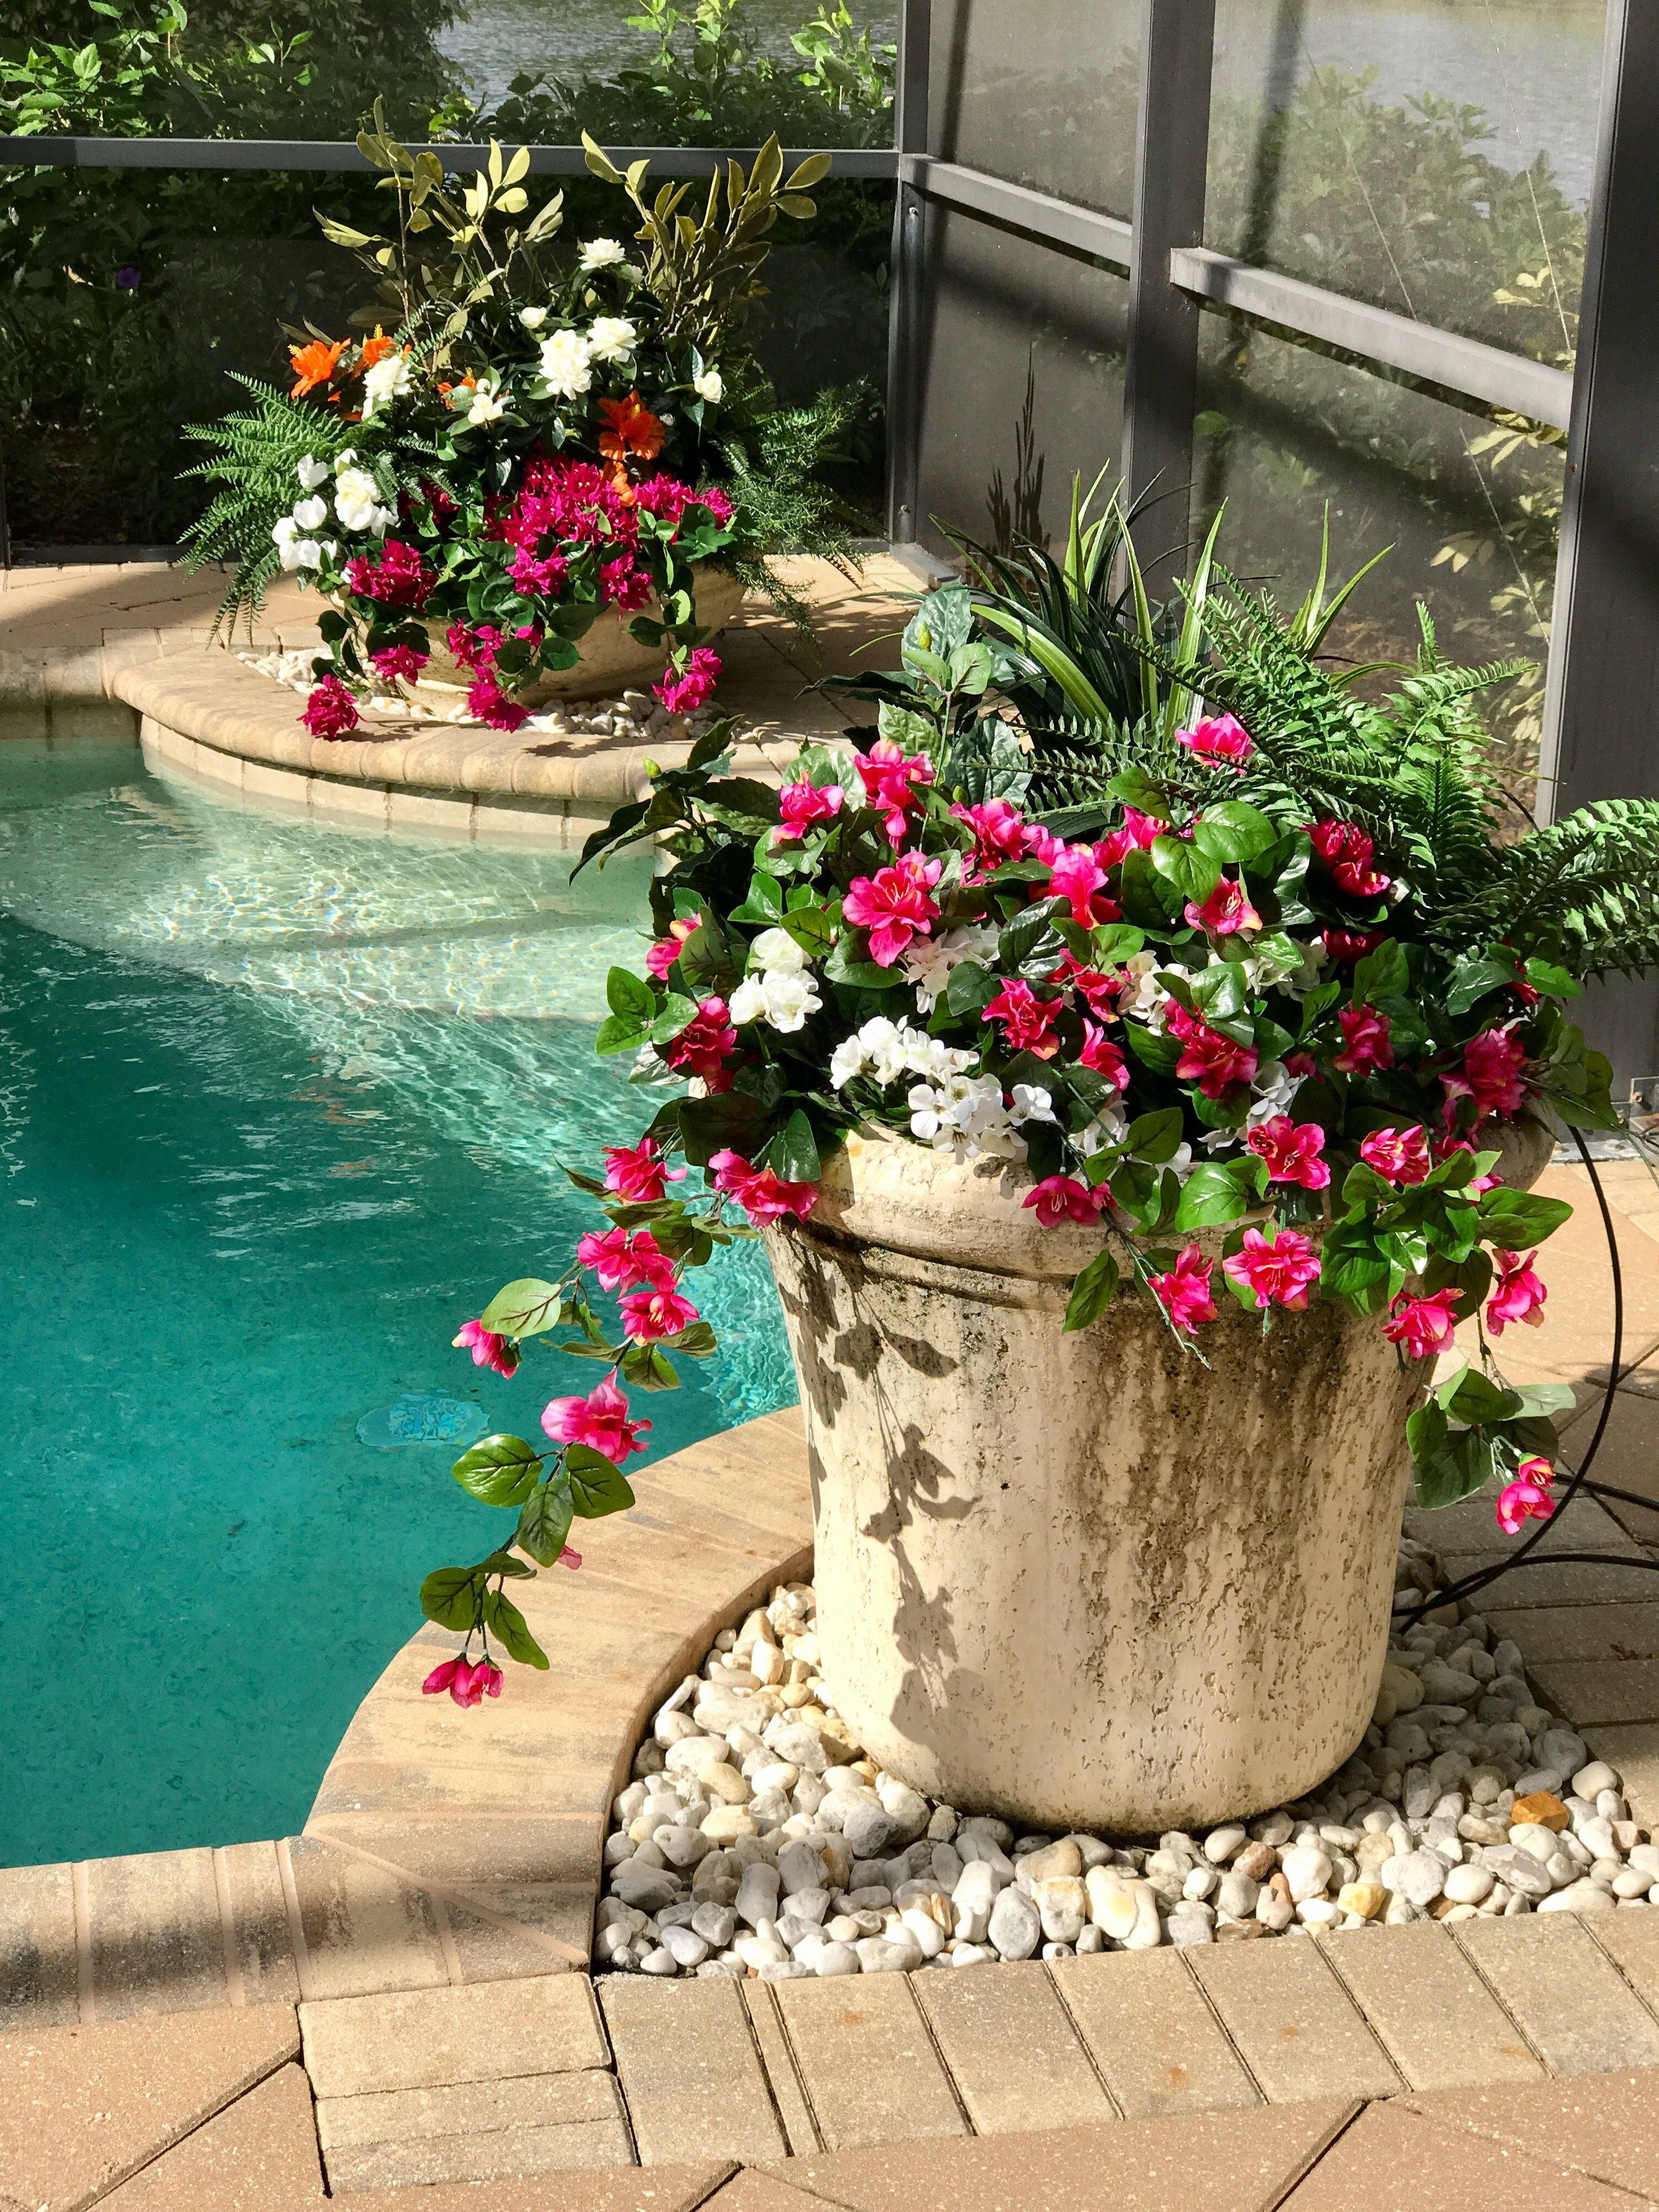 A Florida Pool Container Planting Of Assorted Outdoor Artificial Flowers And Greenery Custom Designed For Landscaping Around Pool Pool Plants Container Plants